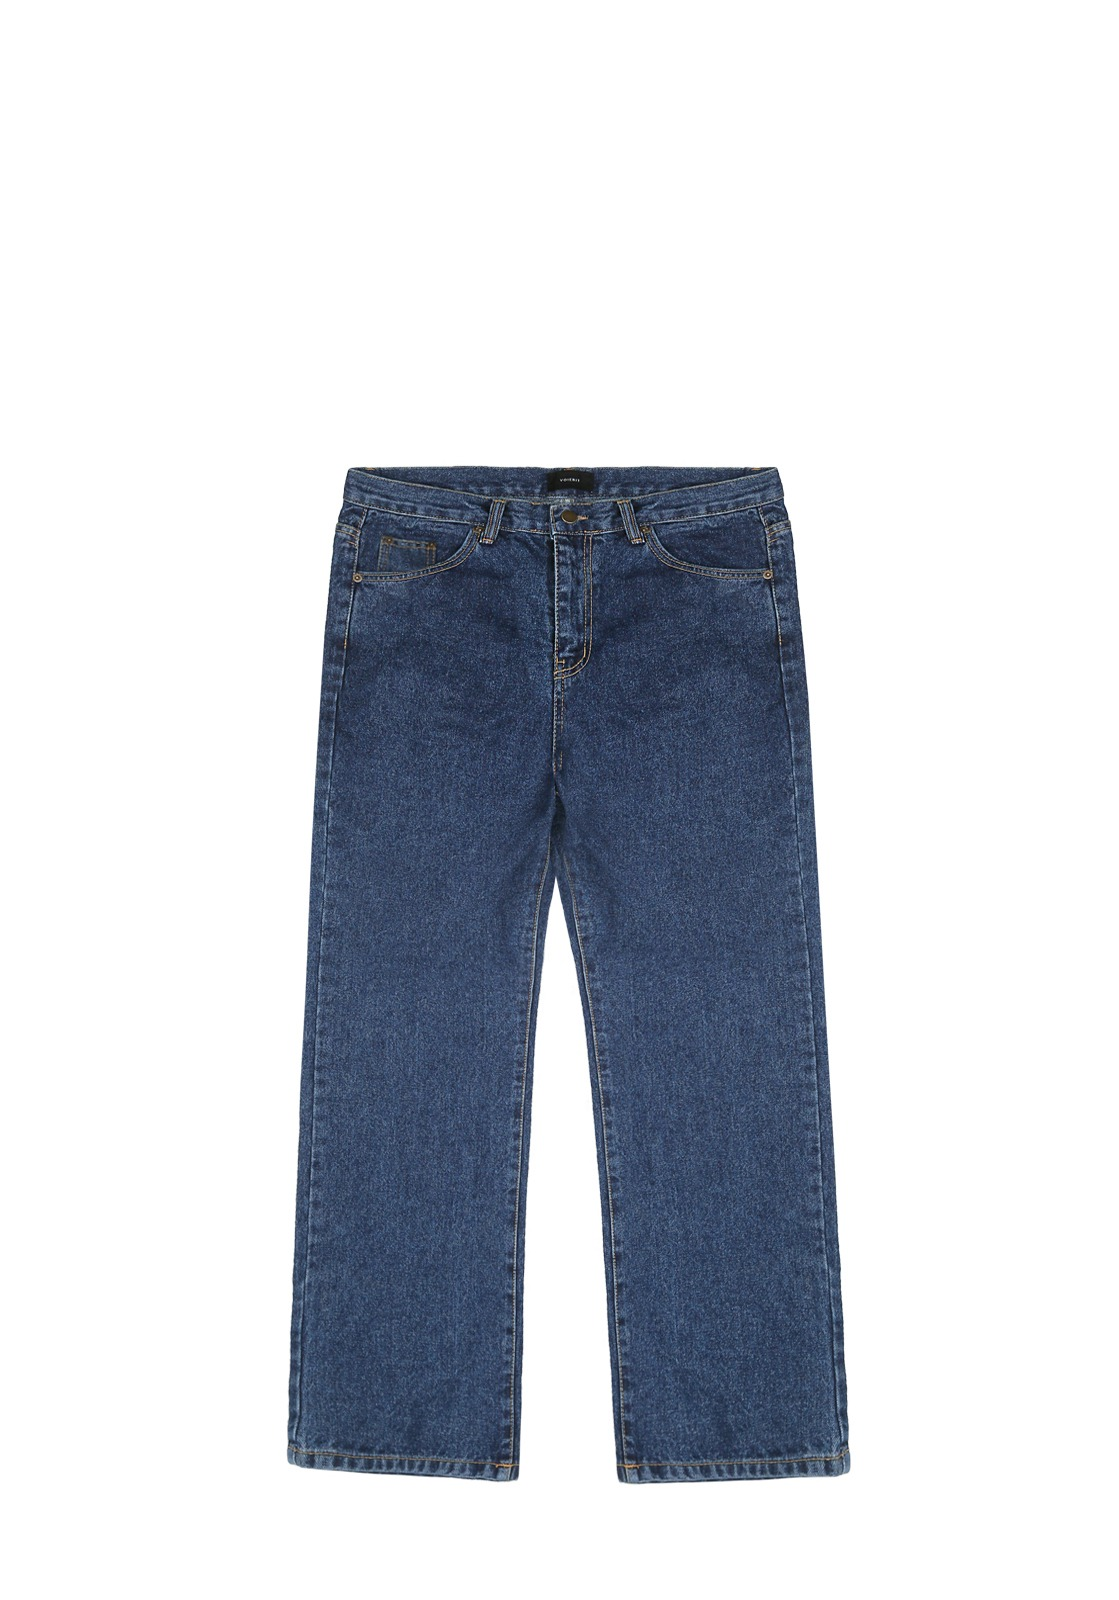 V232 NONE SPAN WIDE DENIM PANTS  DEEP BLUE